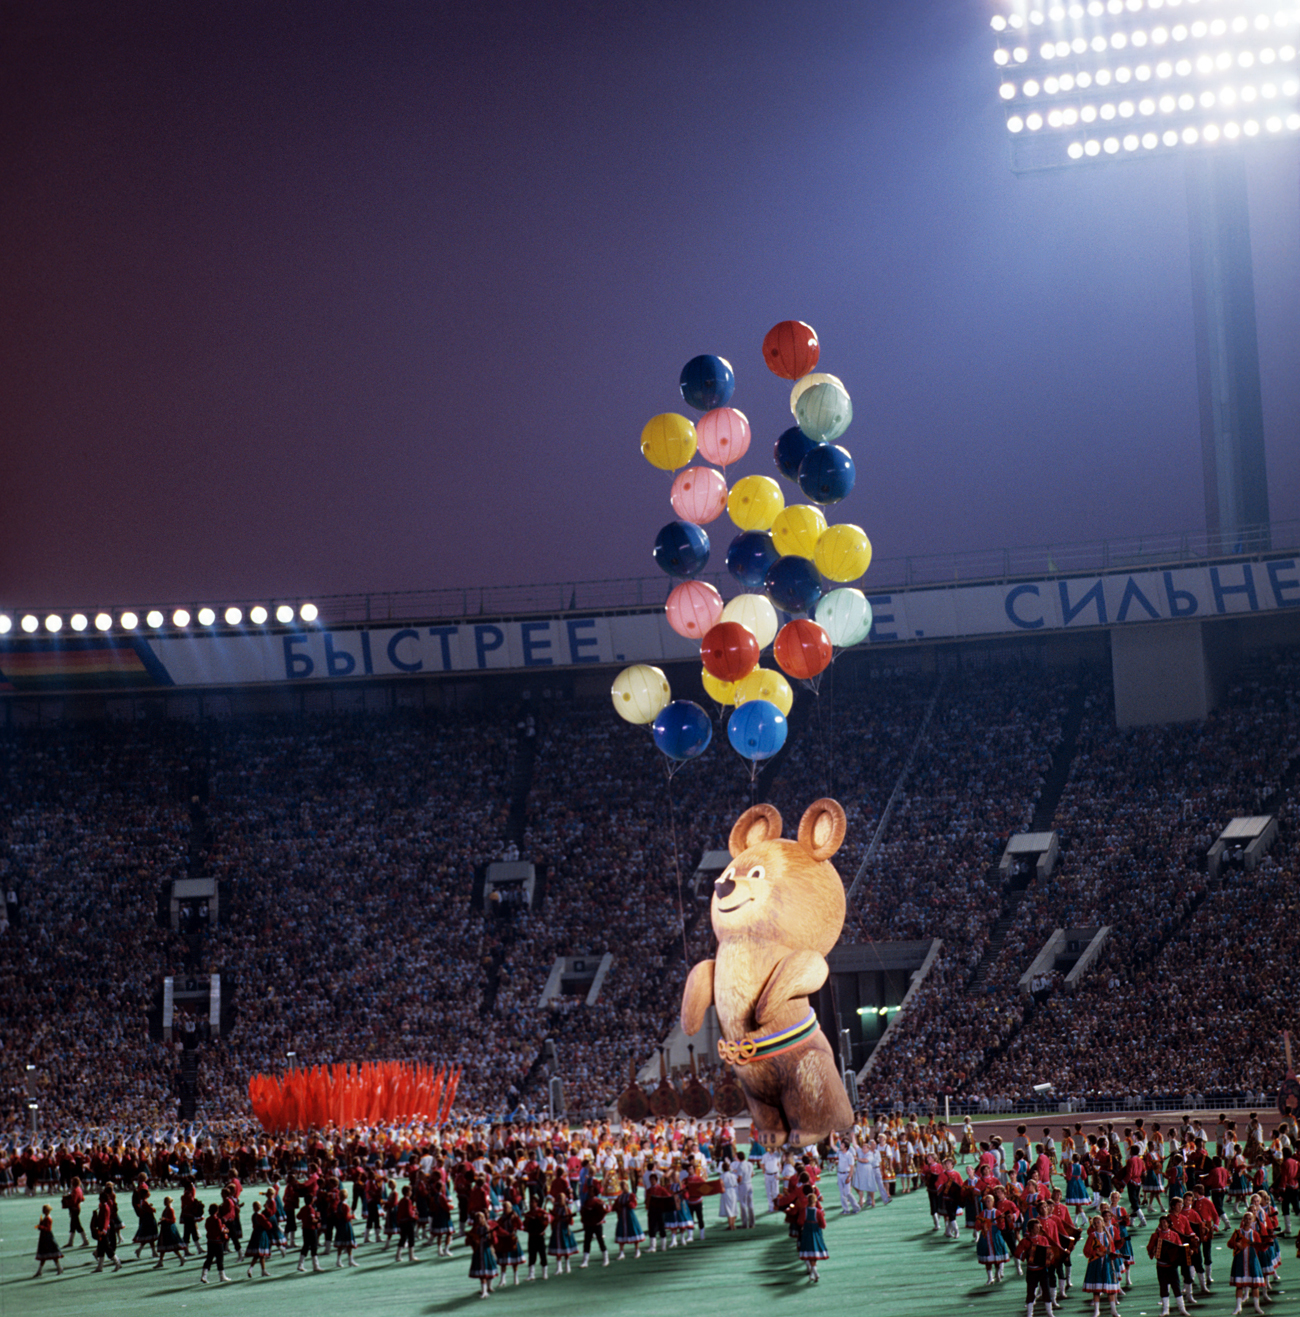 Olympic Mishka flying away from the Lenin Central Stadium during the closing ceremony of the 22nd Summer Olympic Games.  Source: Semyon Maisterman and Nikolai Naumenkov/TASS